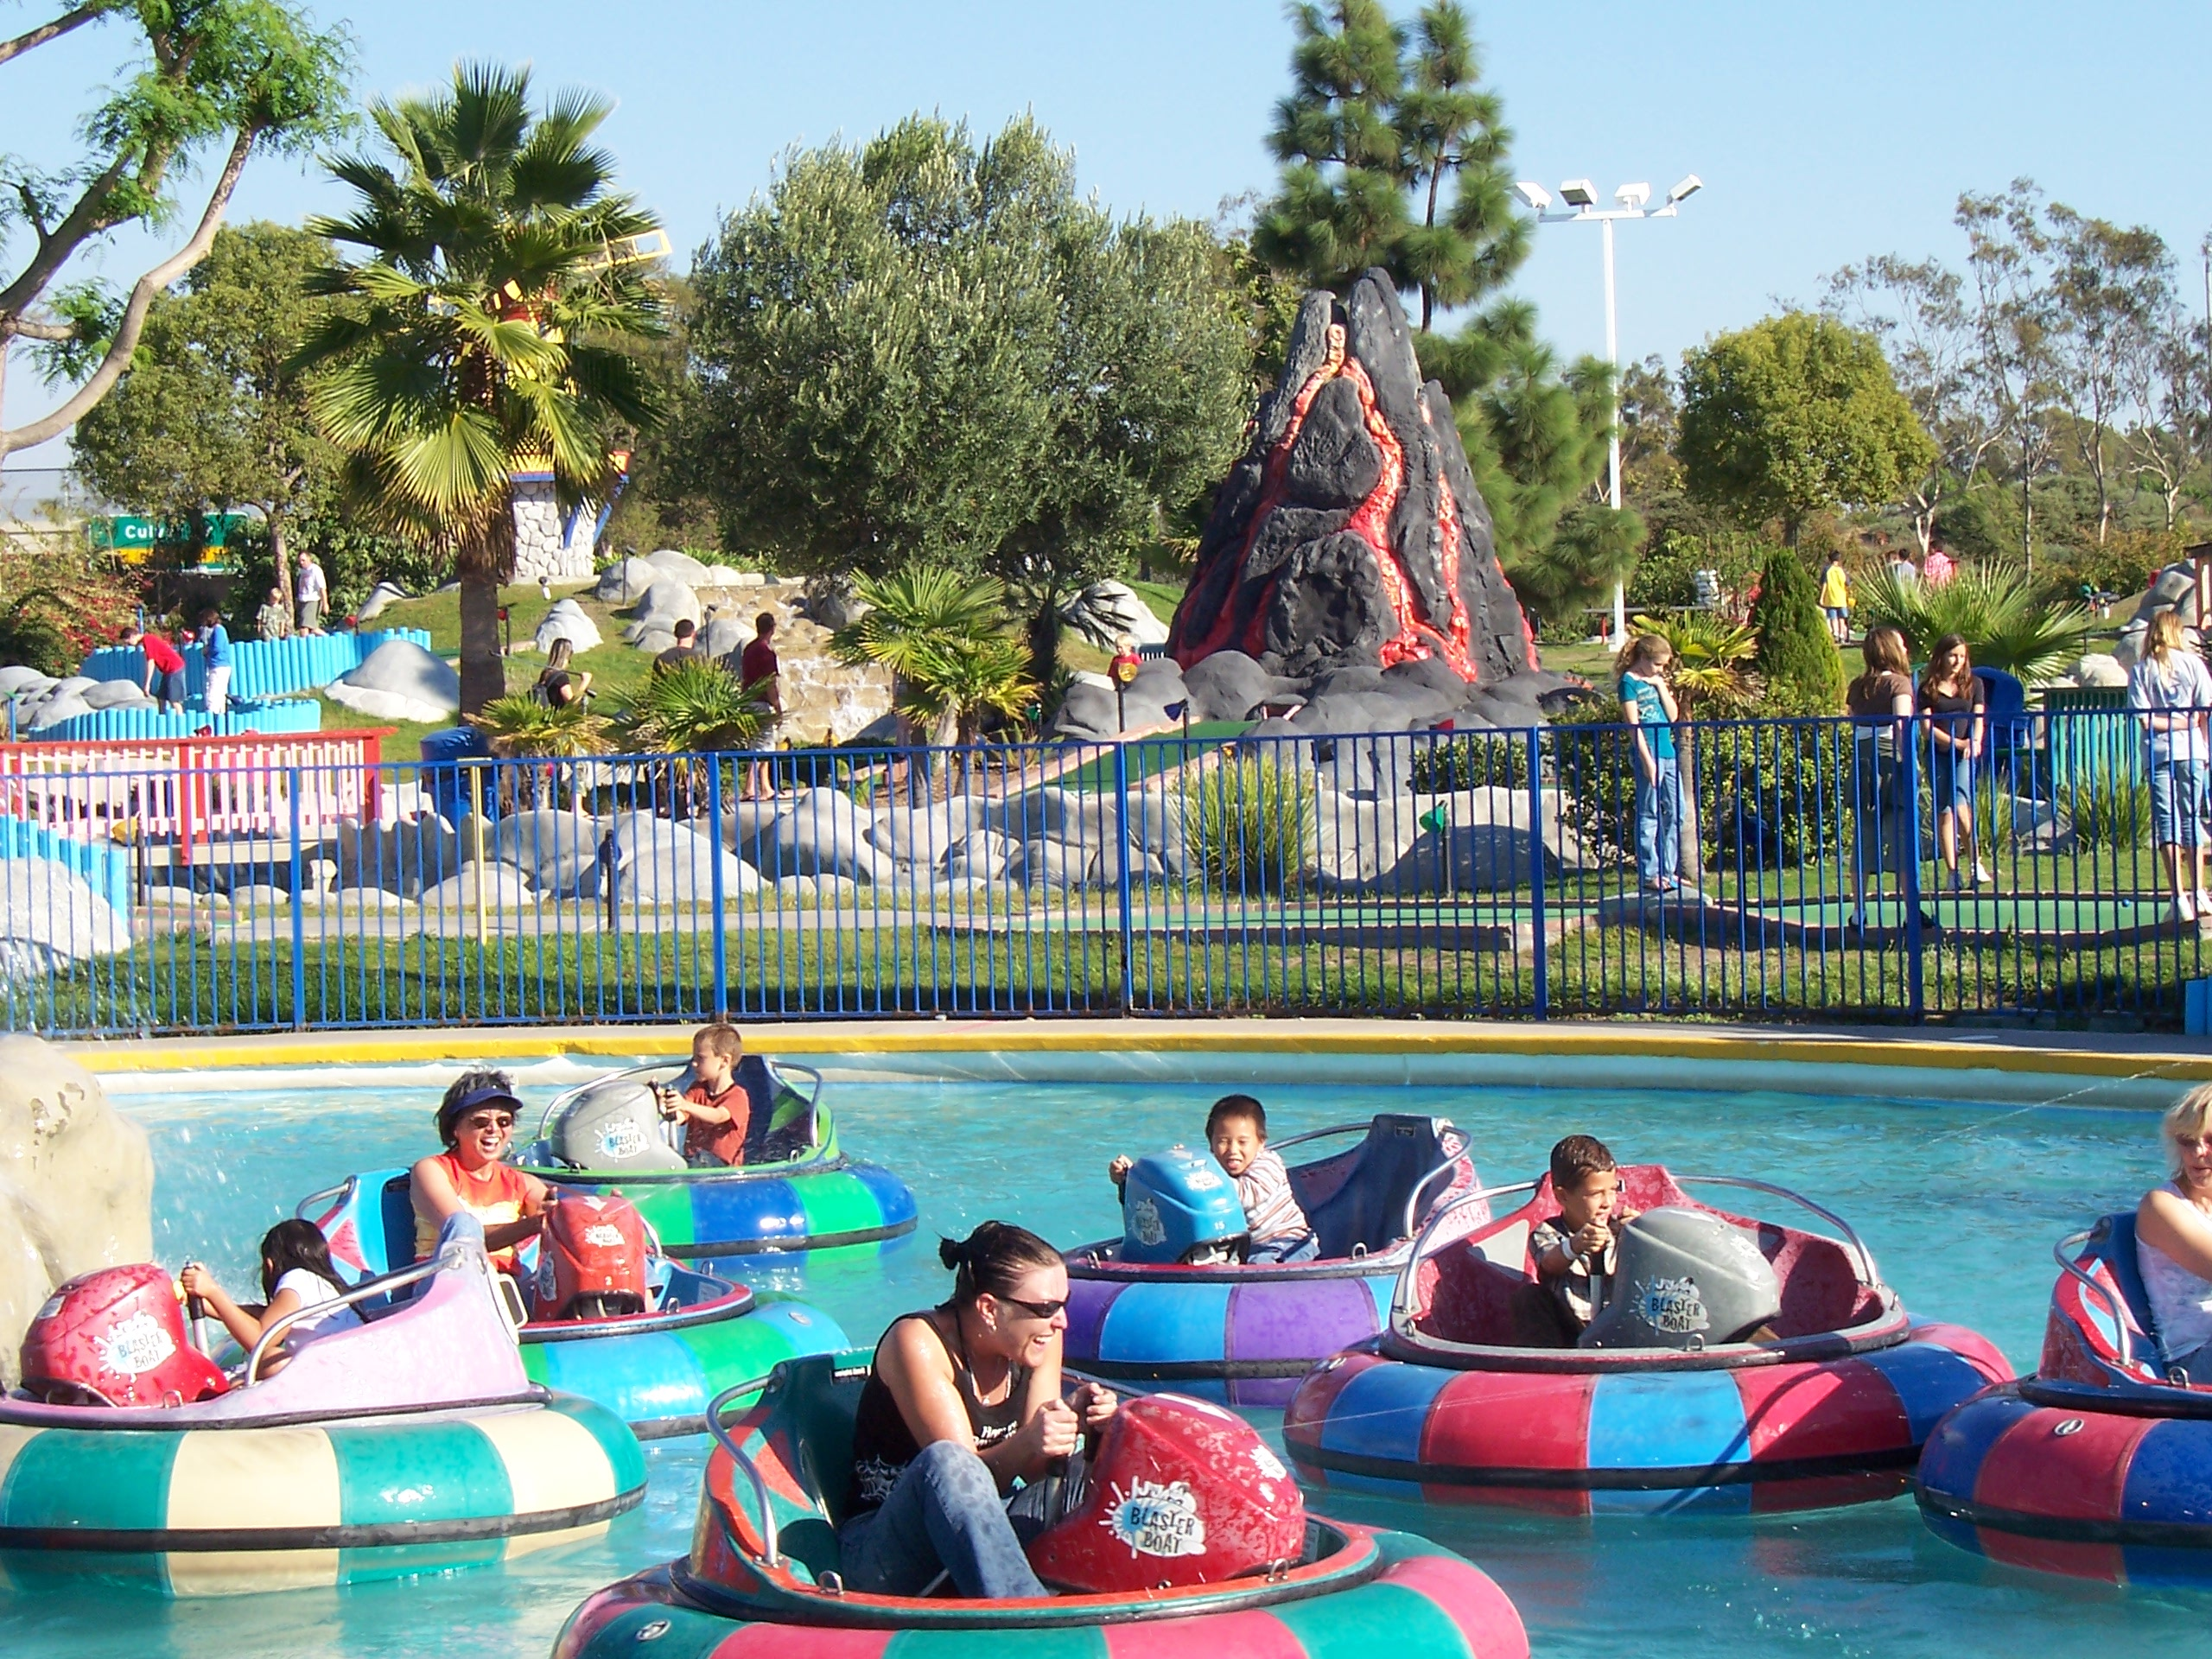 Boomers Arcade and Amusement Park | Things to do in Orange ...